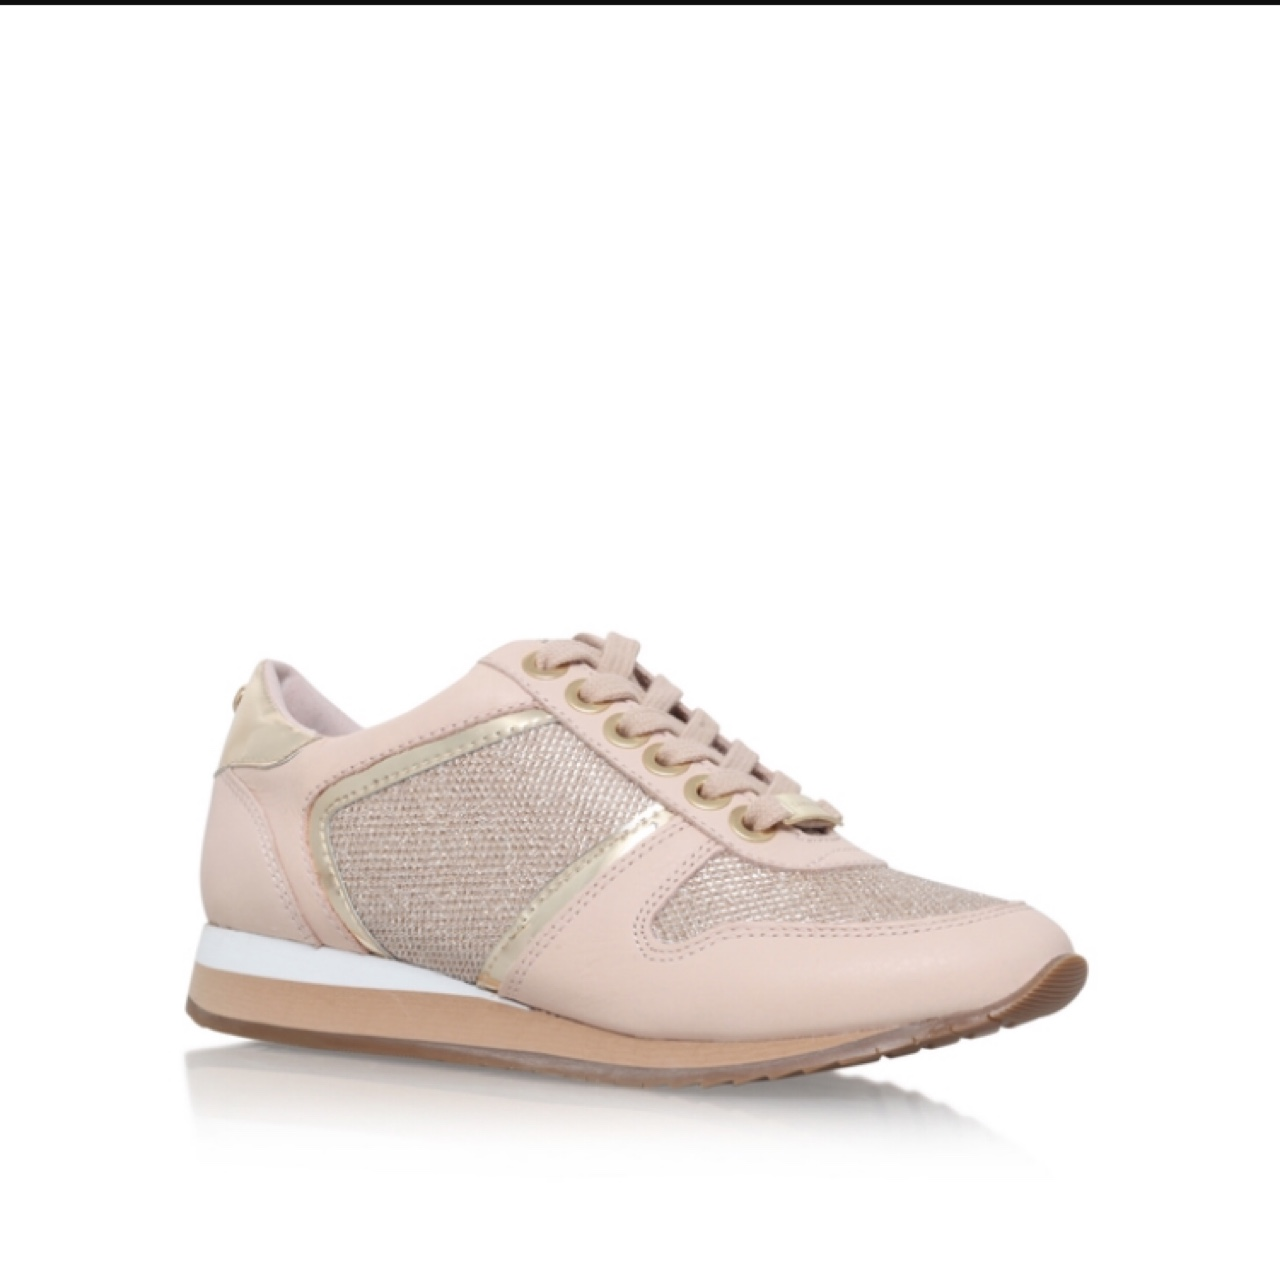 CARVELA pink glitter sparkly trainers